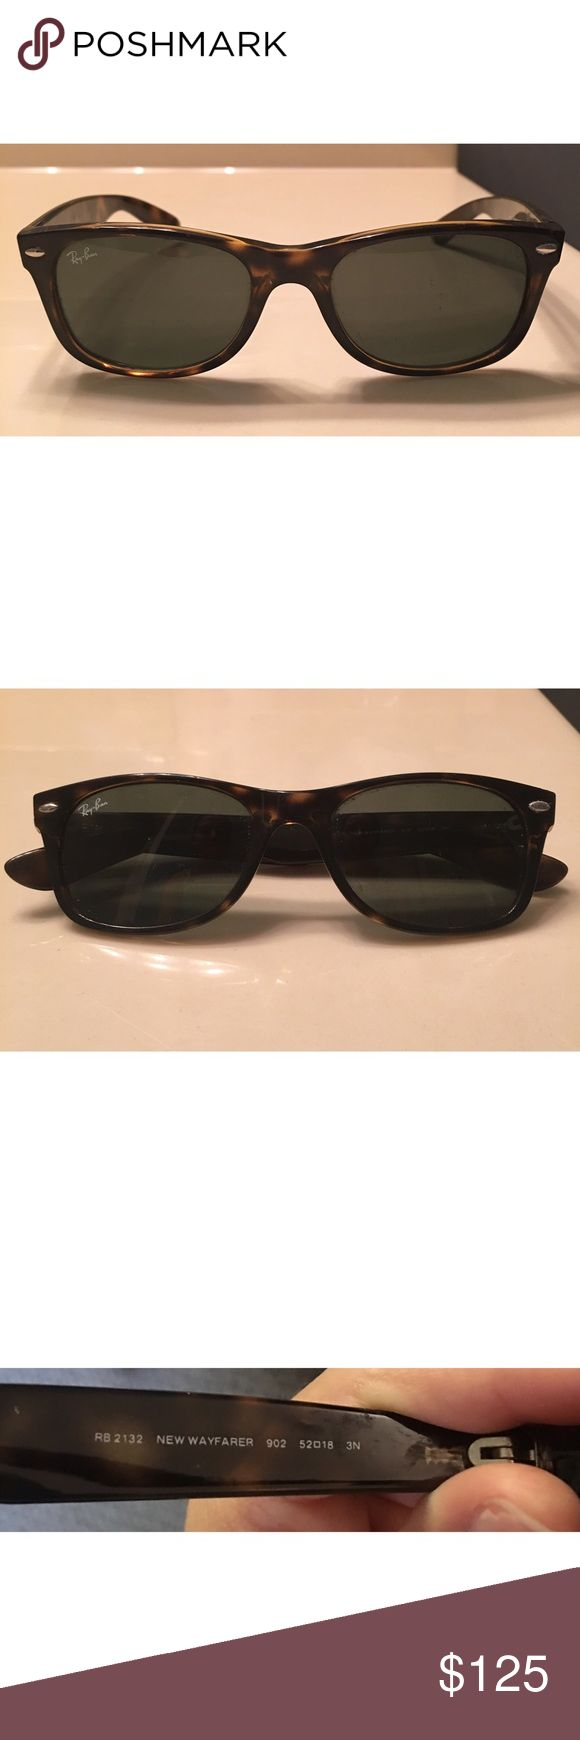 Ray-ban wayfarers barely worn! Low price today! Authentic ray-ban wayfarer sunglasses only worn a few times! In great condition! Little scratch shown in last pic from dropping 🙈but you can't notice it at all. Originally $140. Will include black ray ban case with cleaning cloth.                                                            Frame--Tortoise                                                            Lenses--Green classic g-15                                     Non polarized…